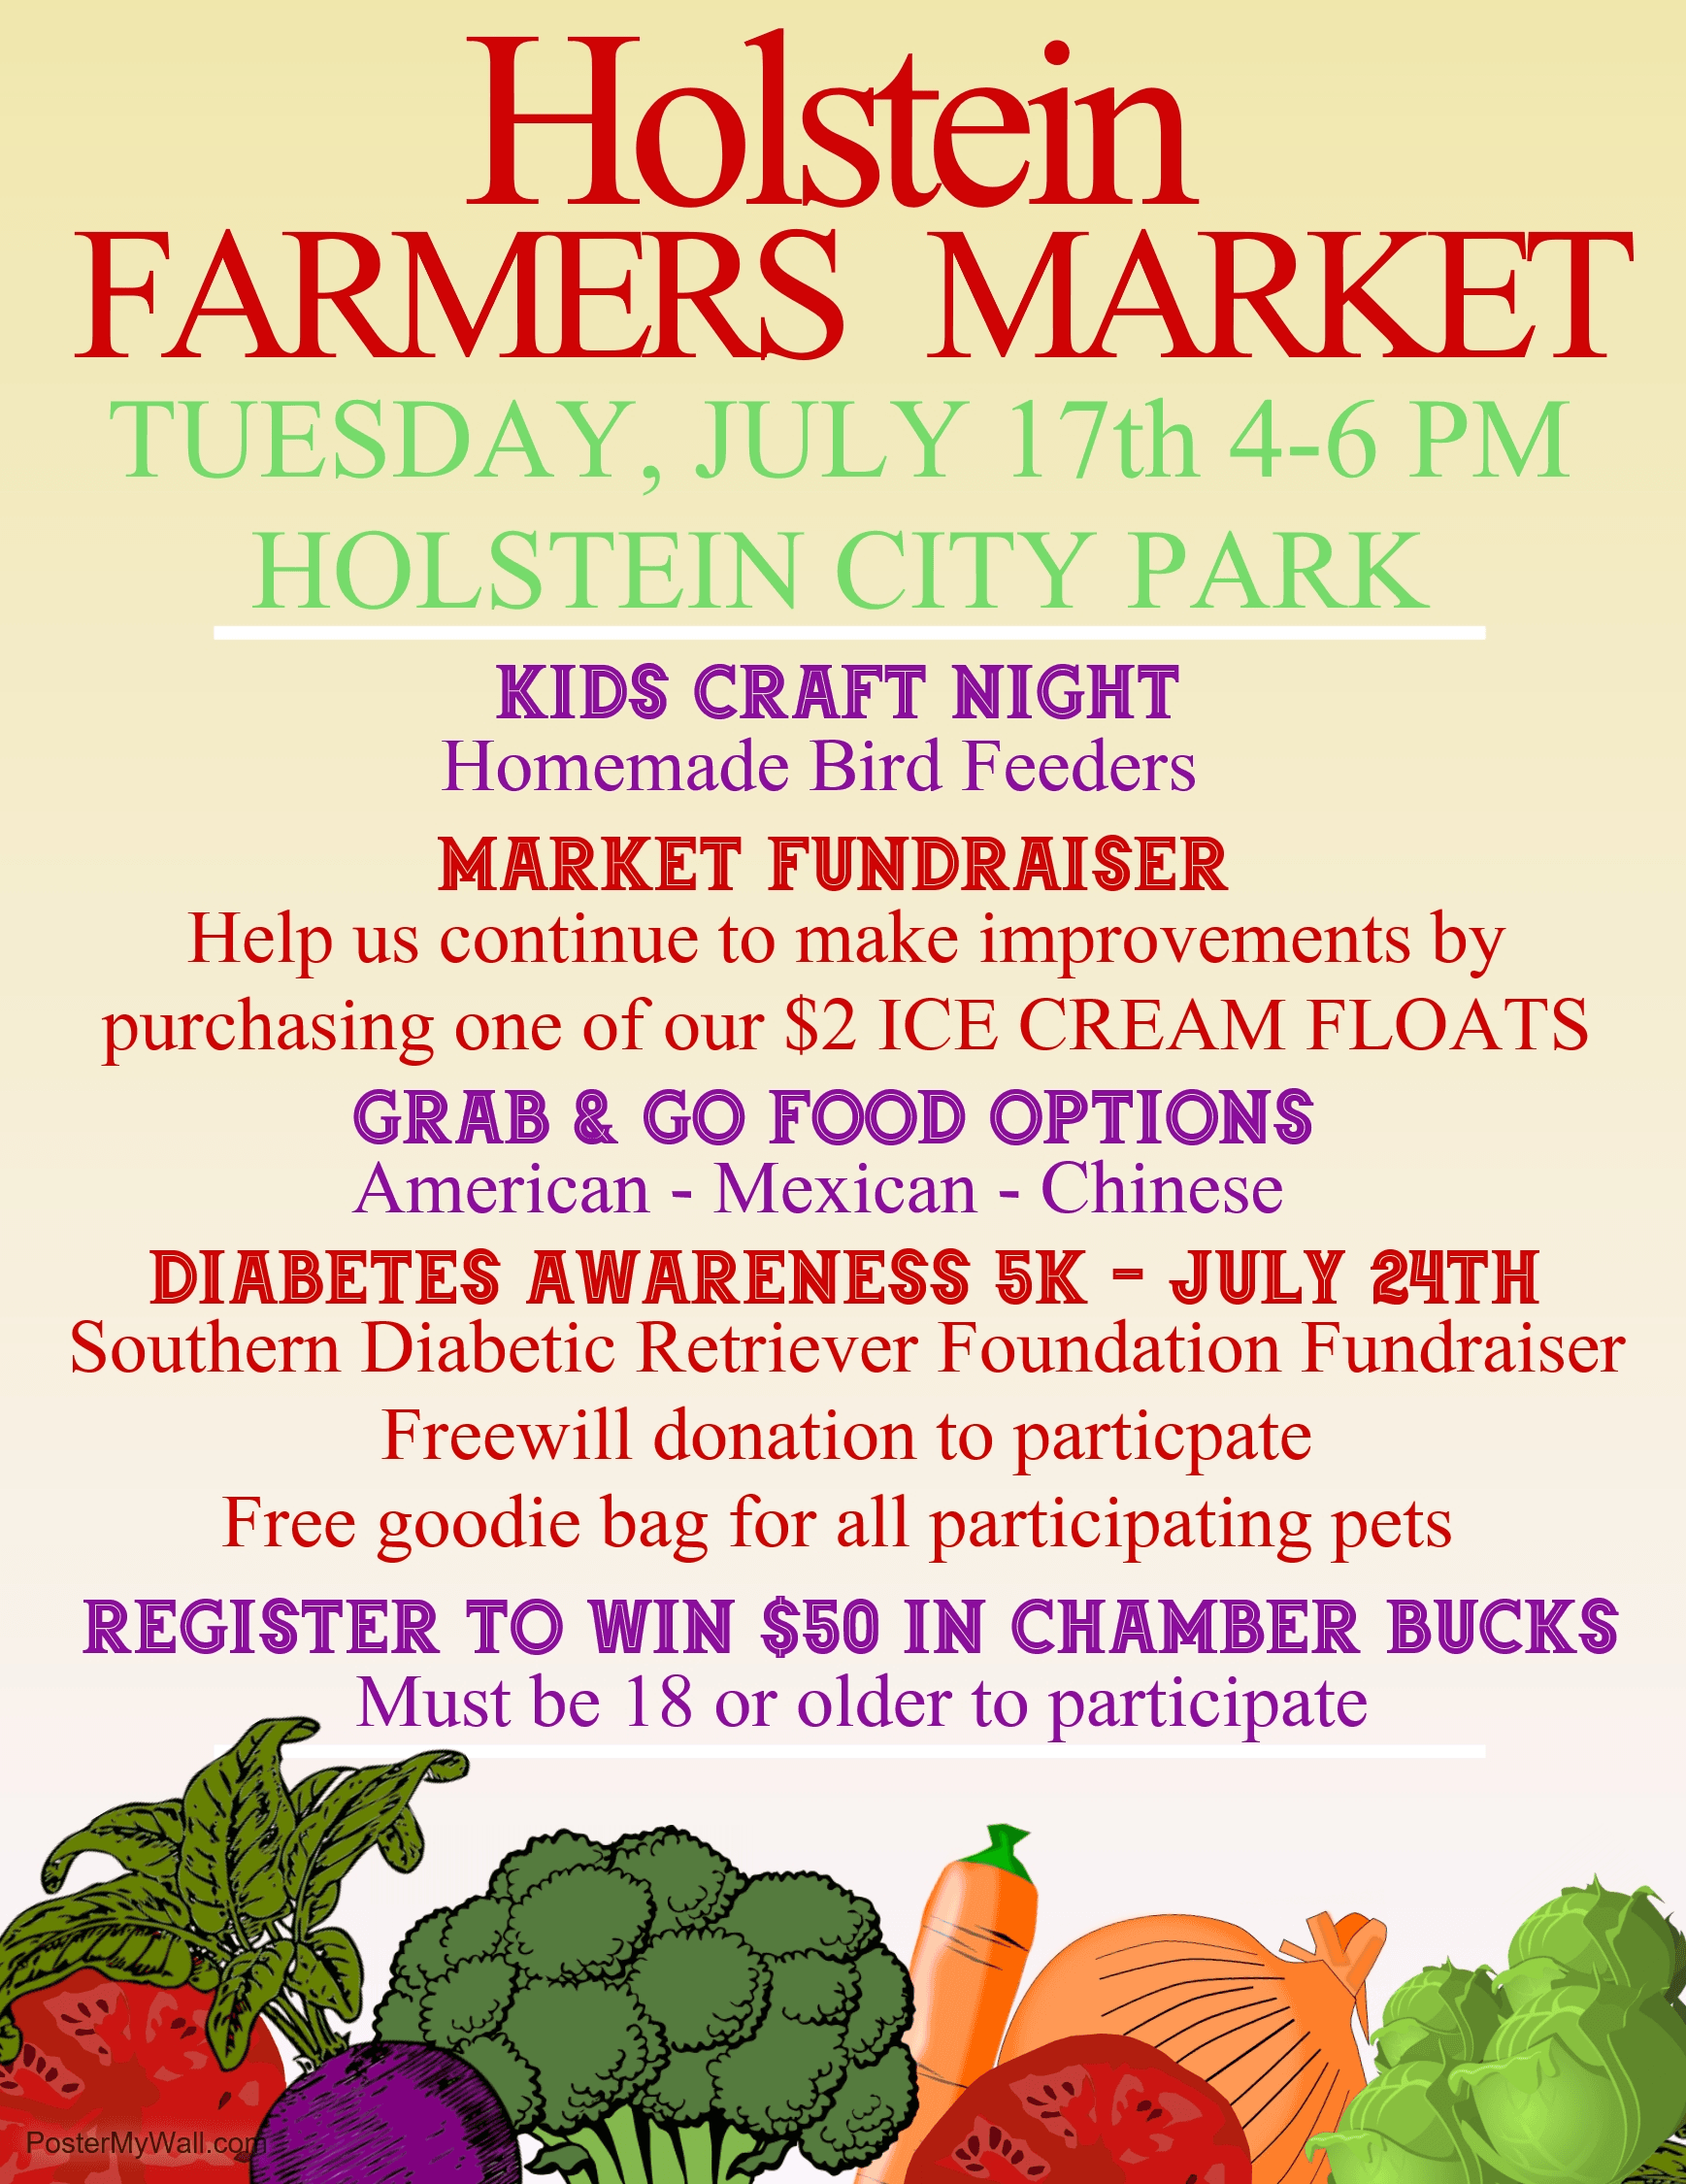 July 17th Farmers Market